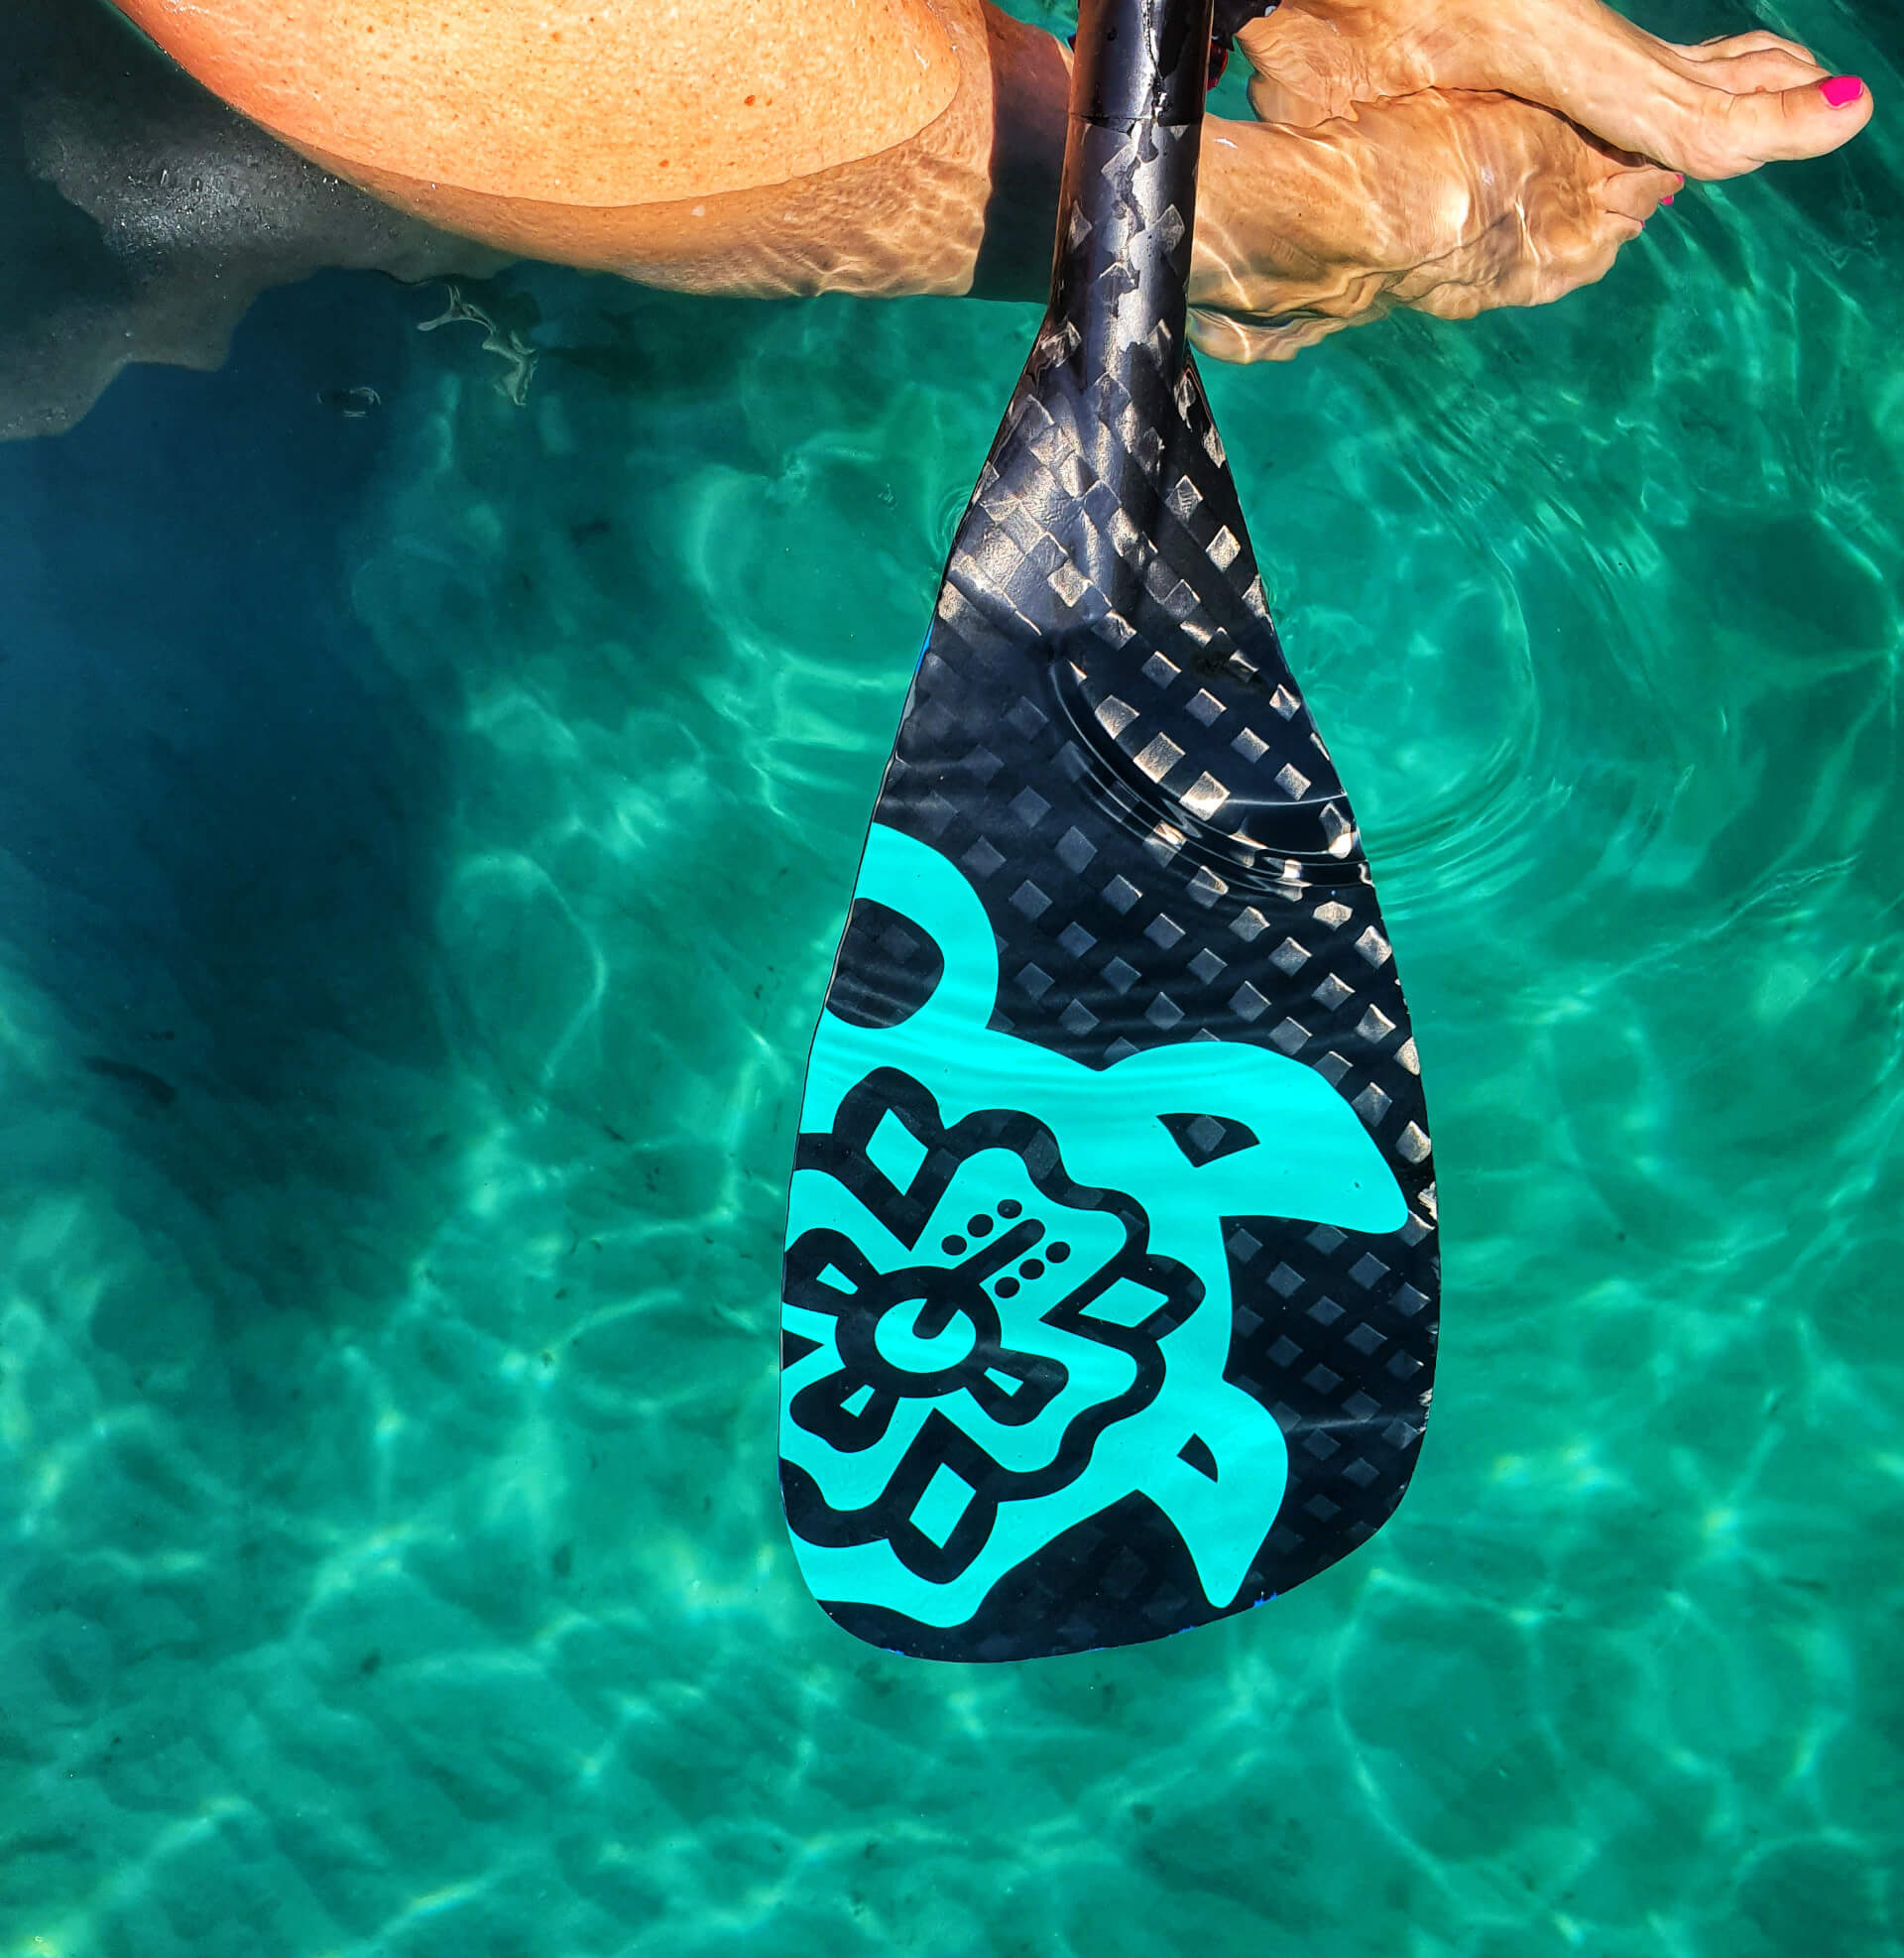 Carey Surf Paddle Hoe Custom Paddle under crystal clear water